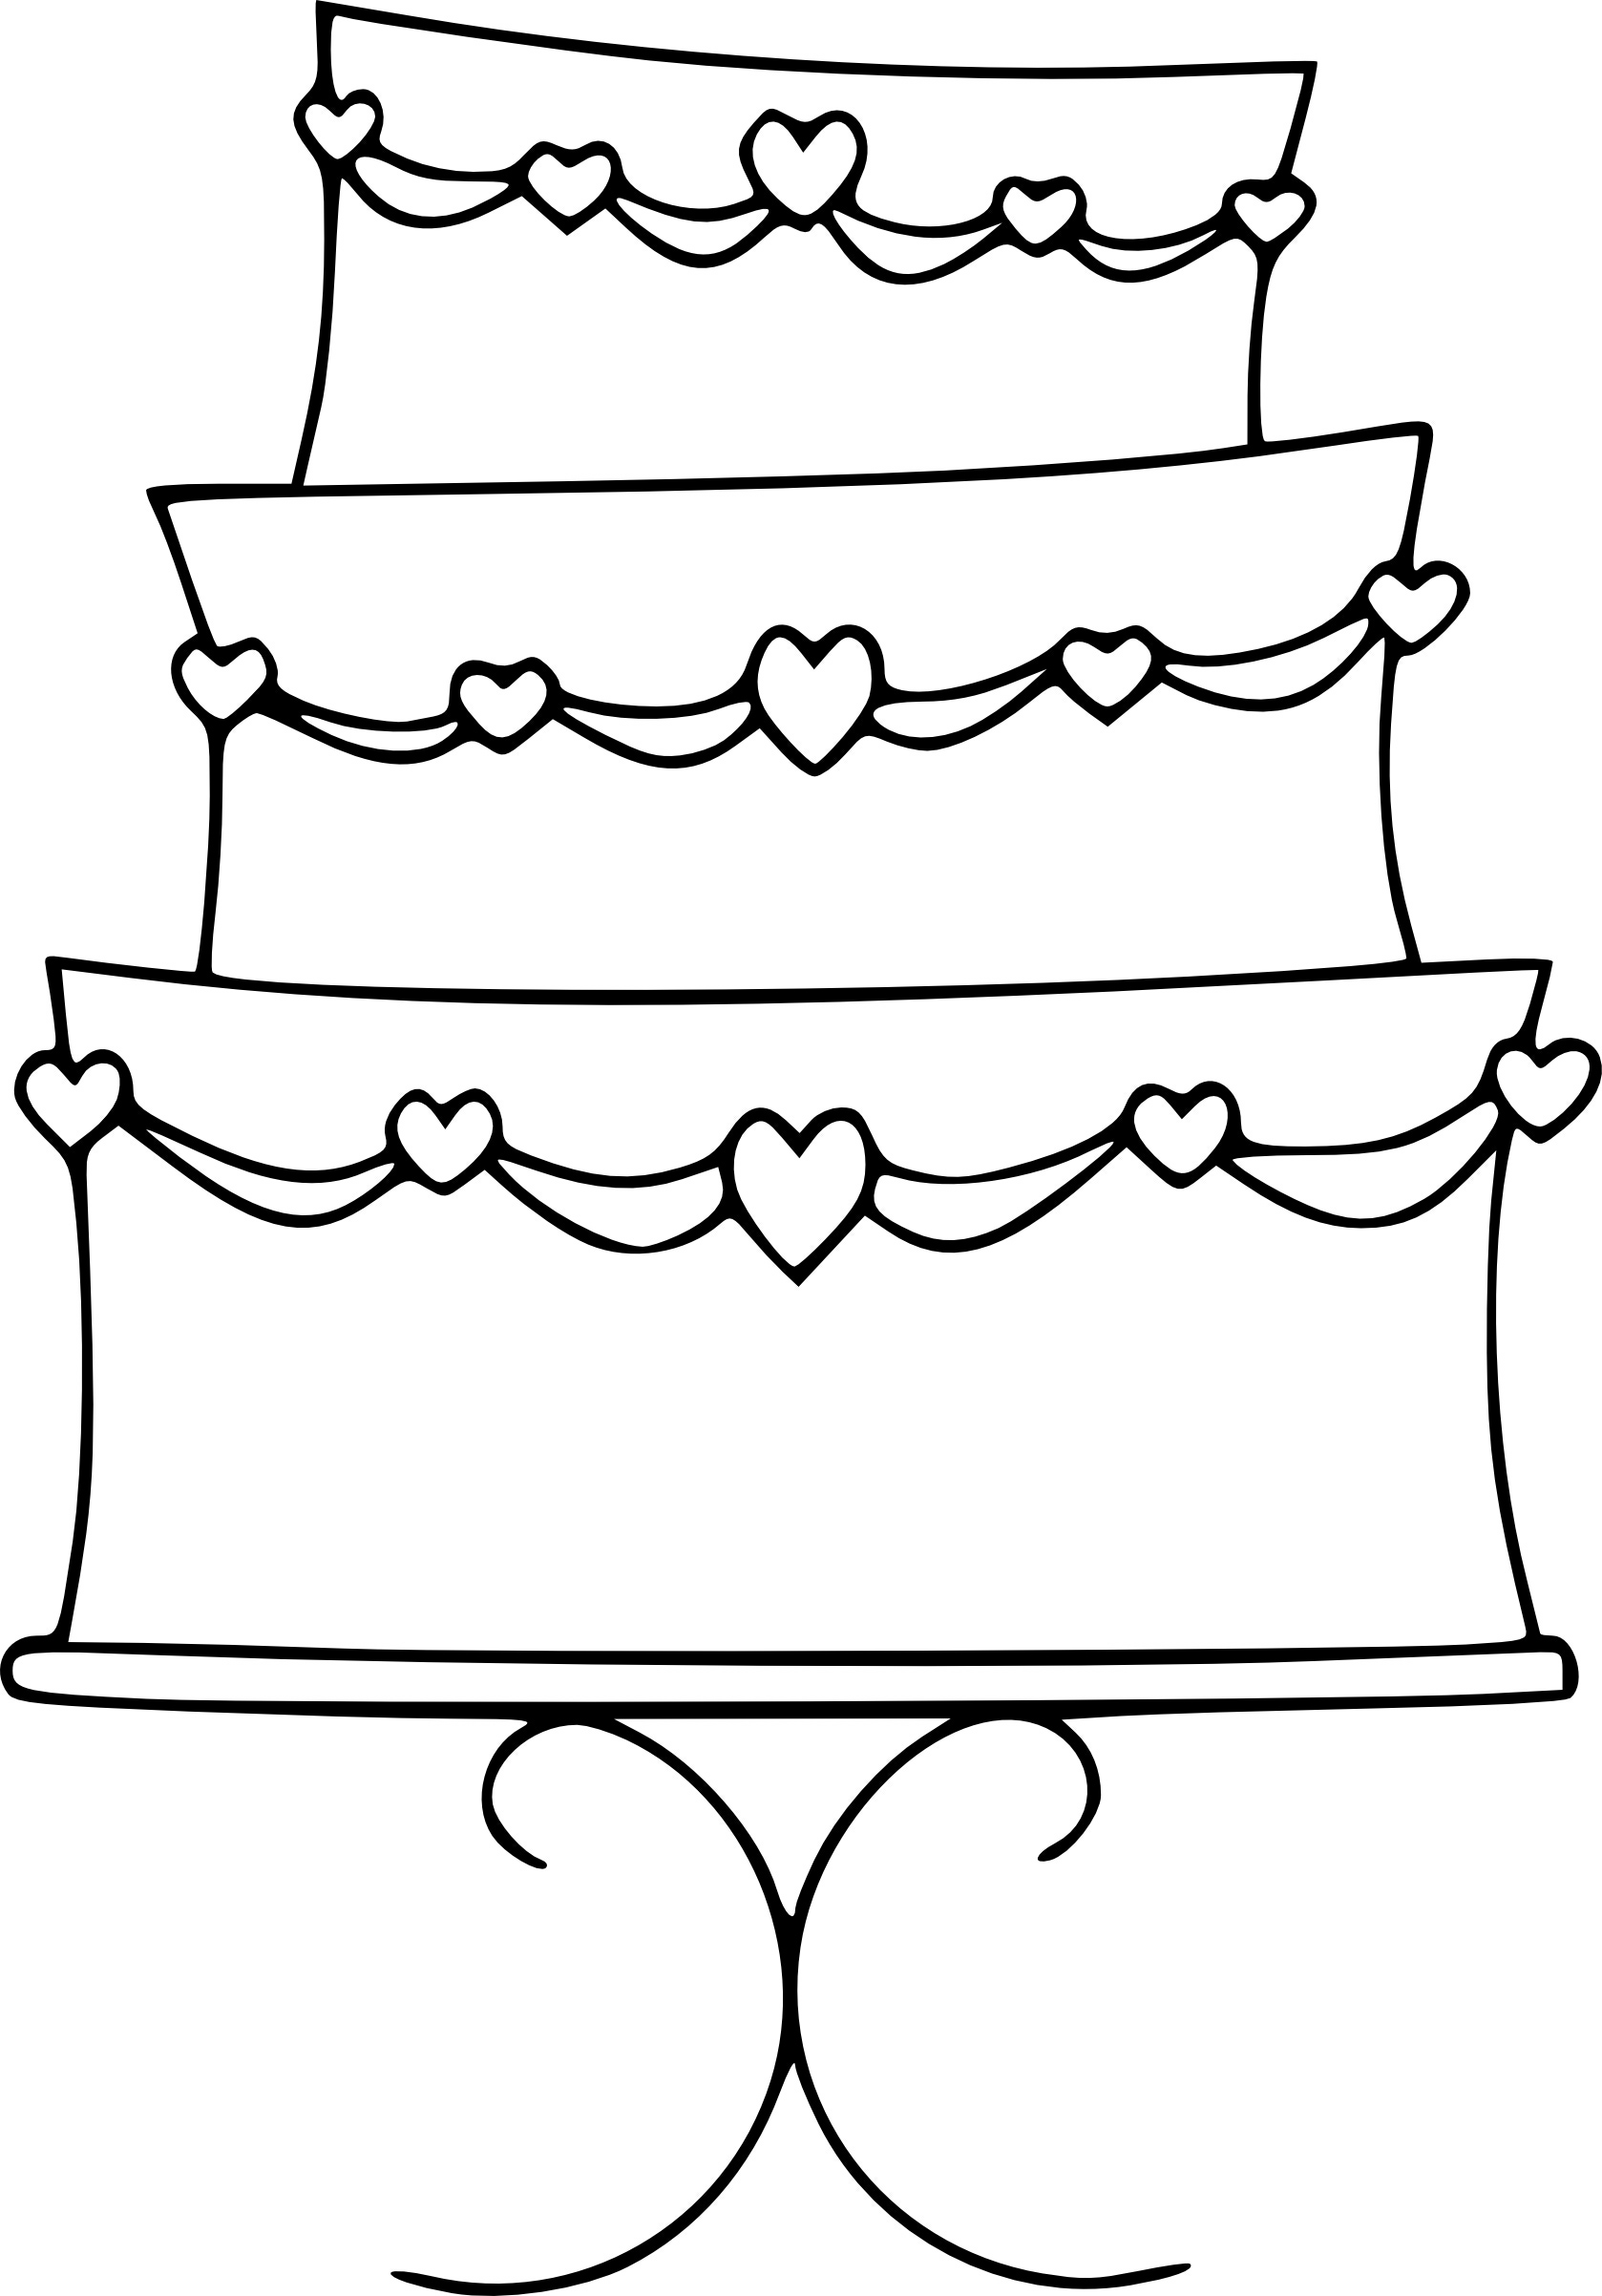 Free Birthday Cake Outline, Download Free Clip Art, Free